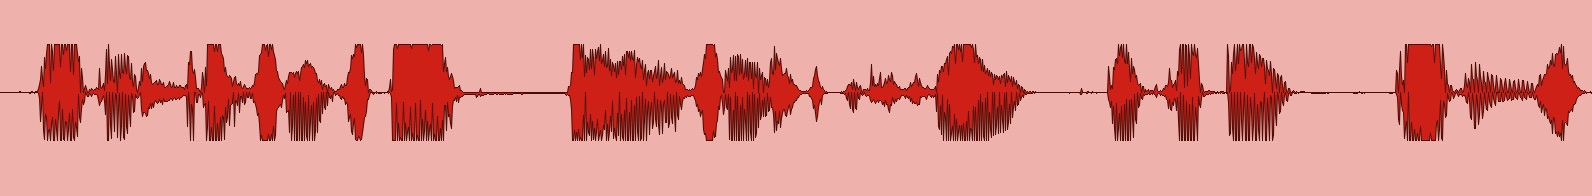 original clipped audio how to de clip distorted audio what plug-ins to use.jpg